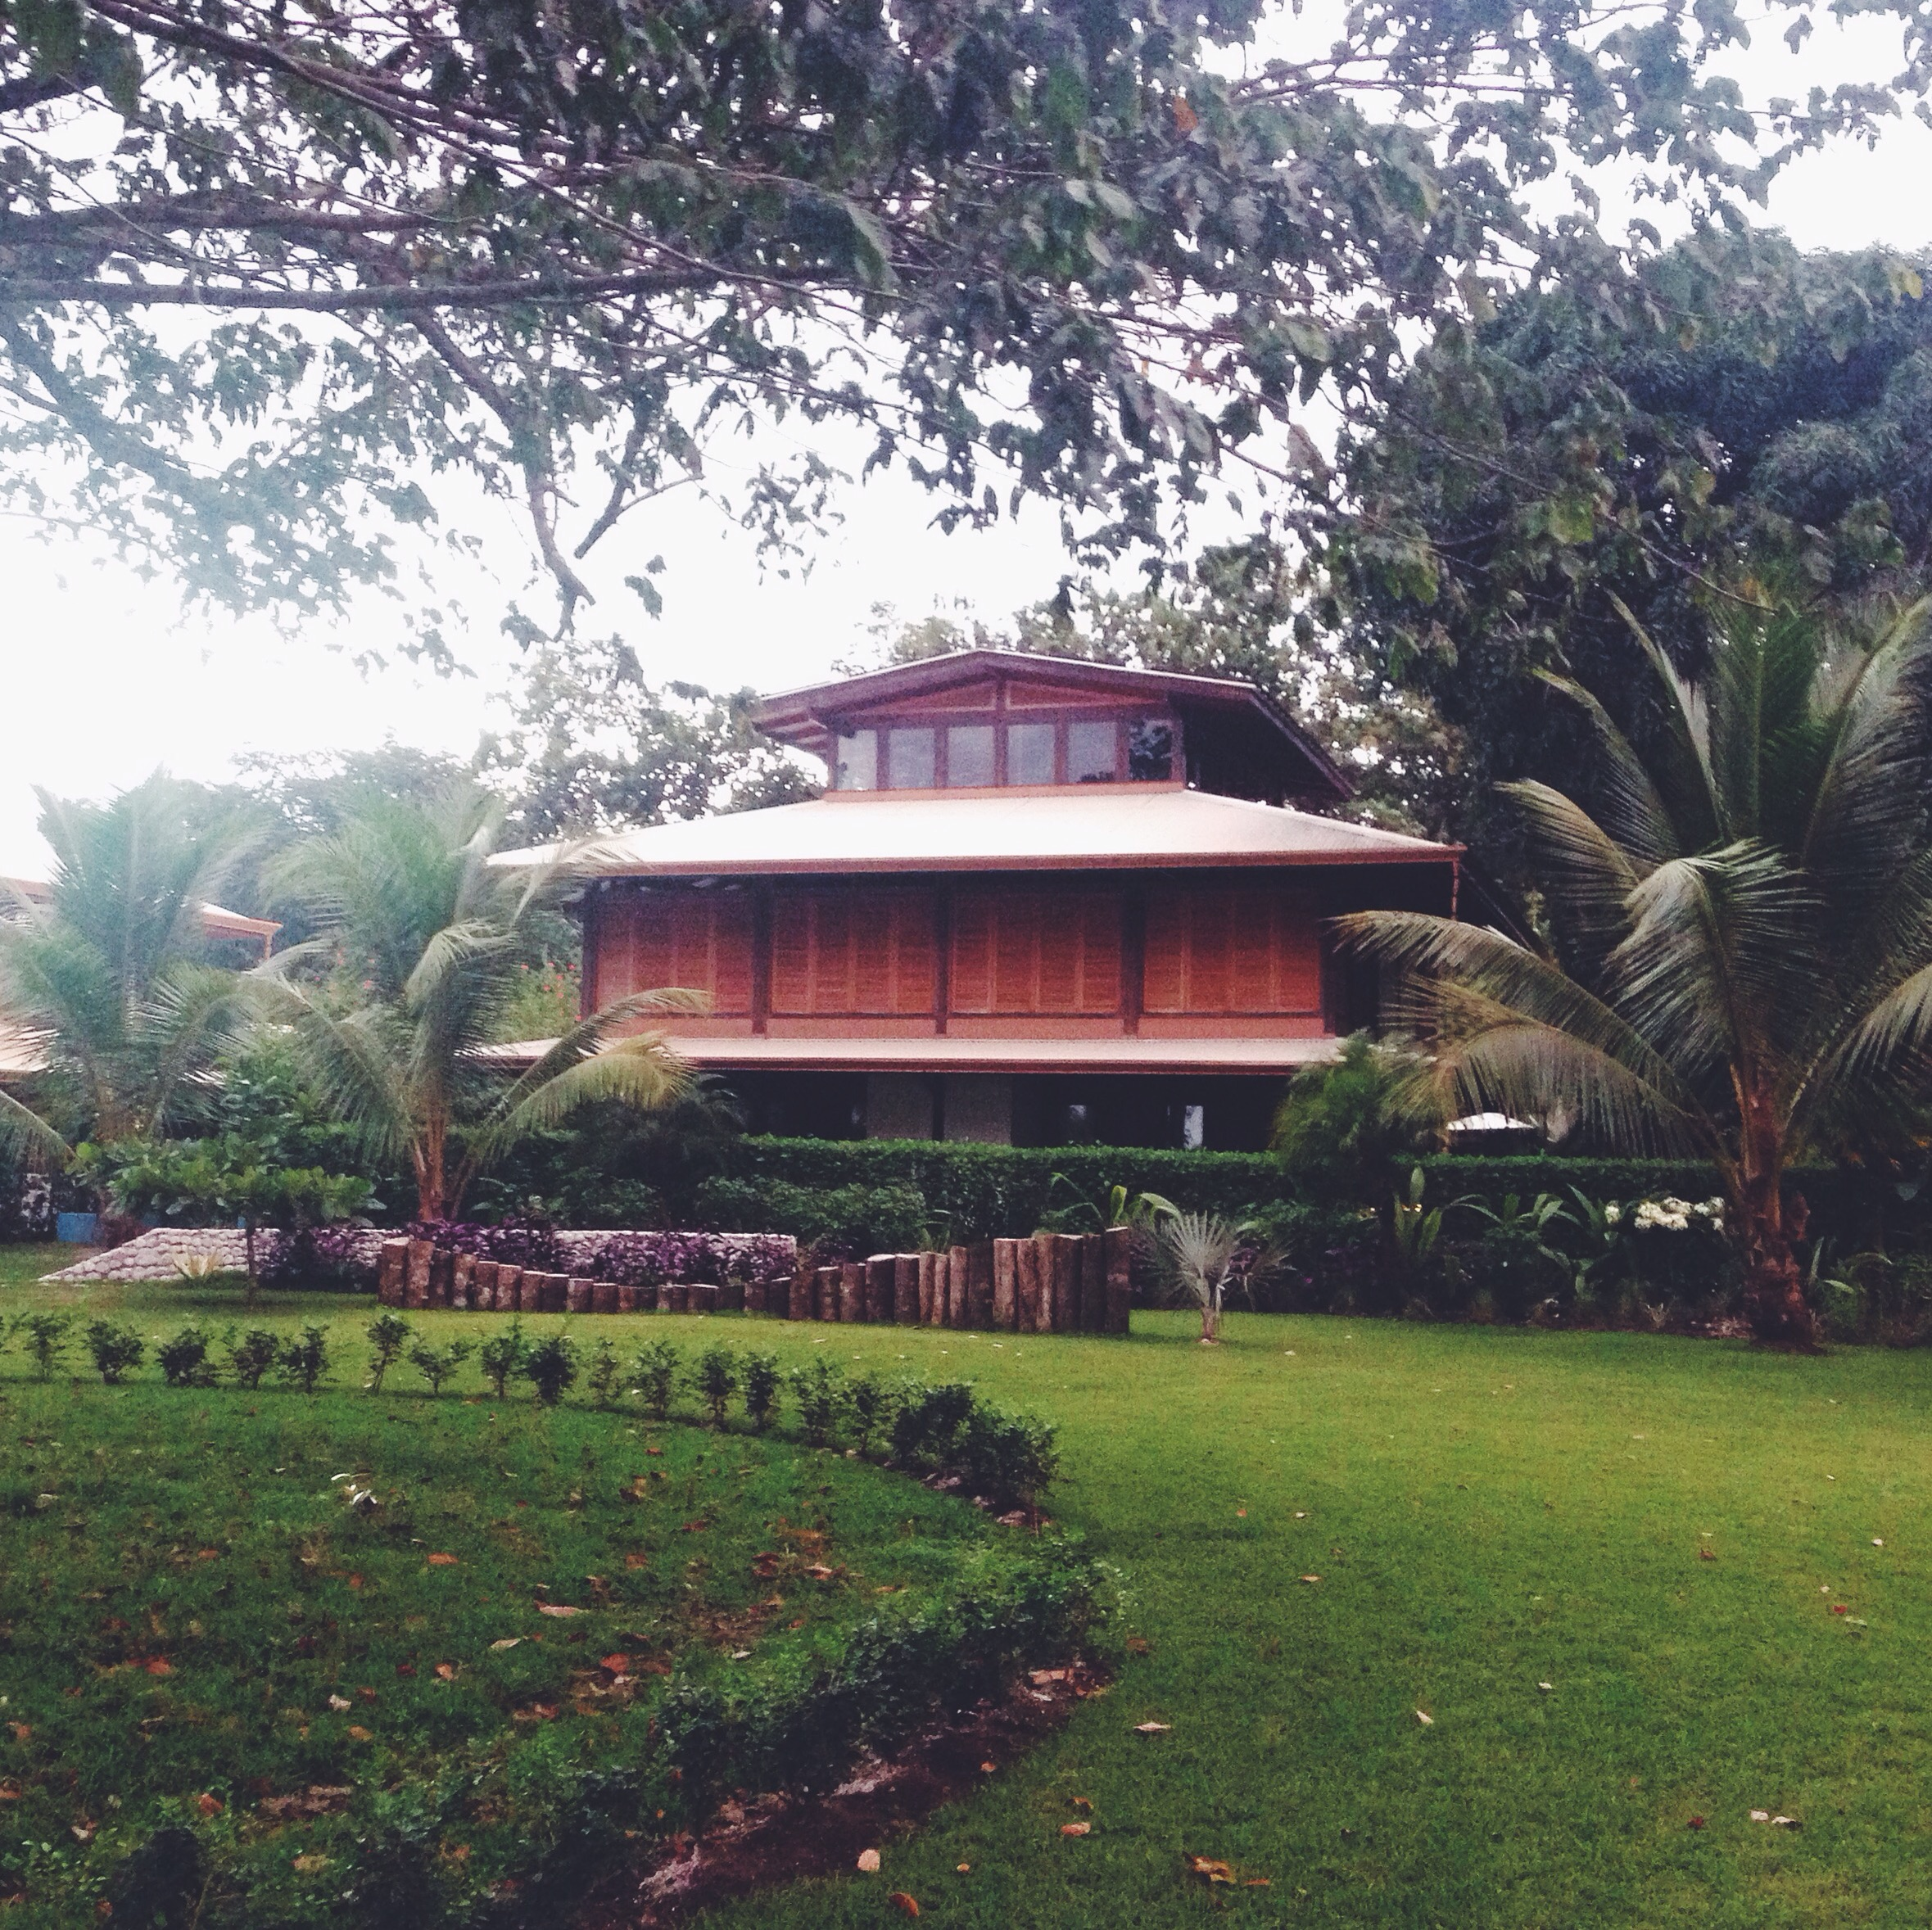 """The Blue Osa grounds were exquisite. A striking contrast from the road we'd just befriended, the Osa was draped in jungle greenery that screamed """"Pura Vida!"""", presented amongst chic, minimalist landscaping and architecture."""